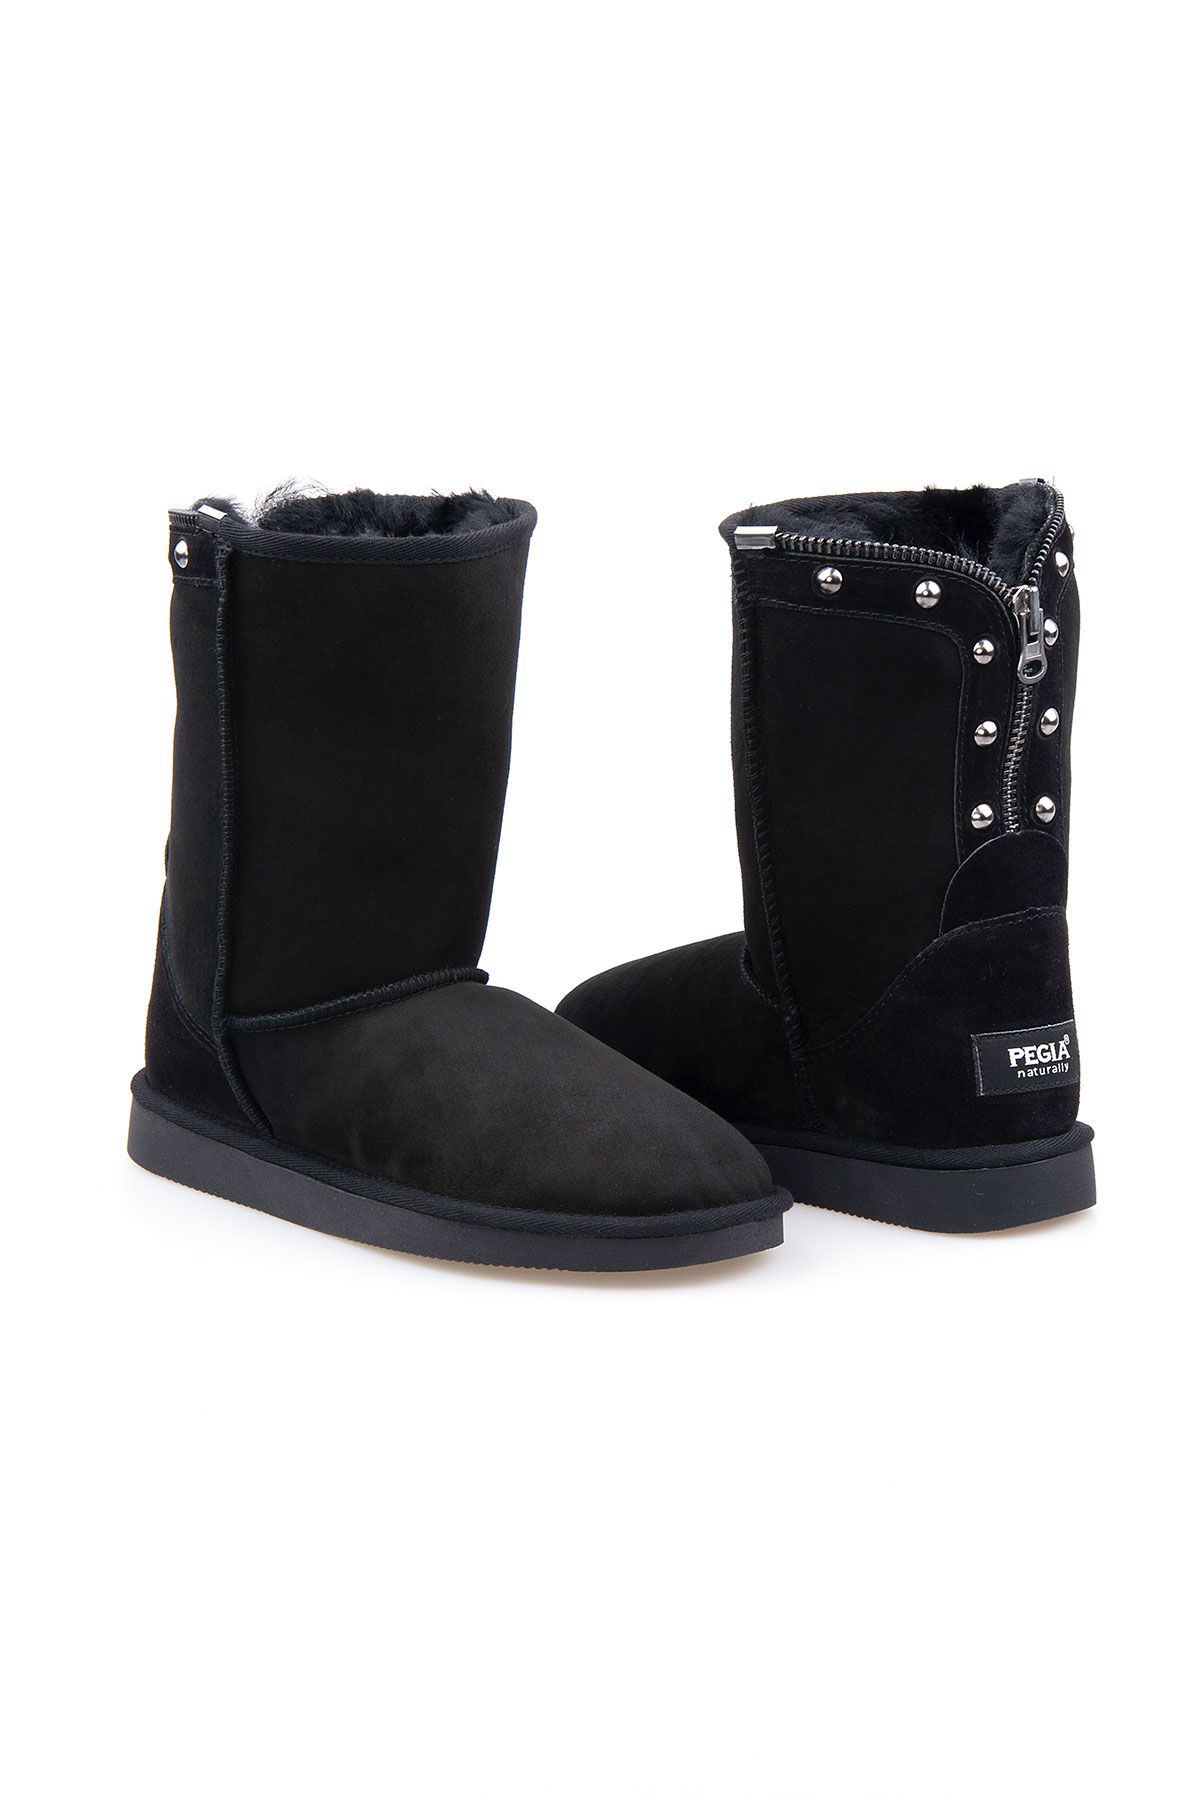 Pegia Genuine Suede Sheepskin Lined Women's Laced Boots 191052 Black